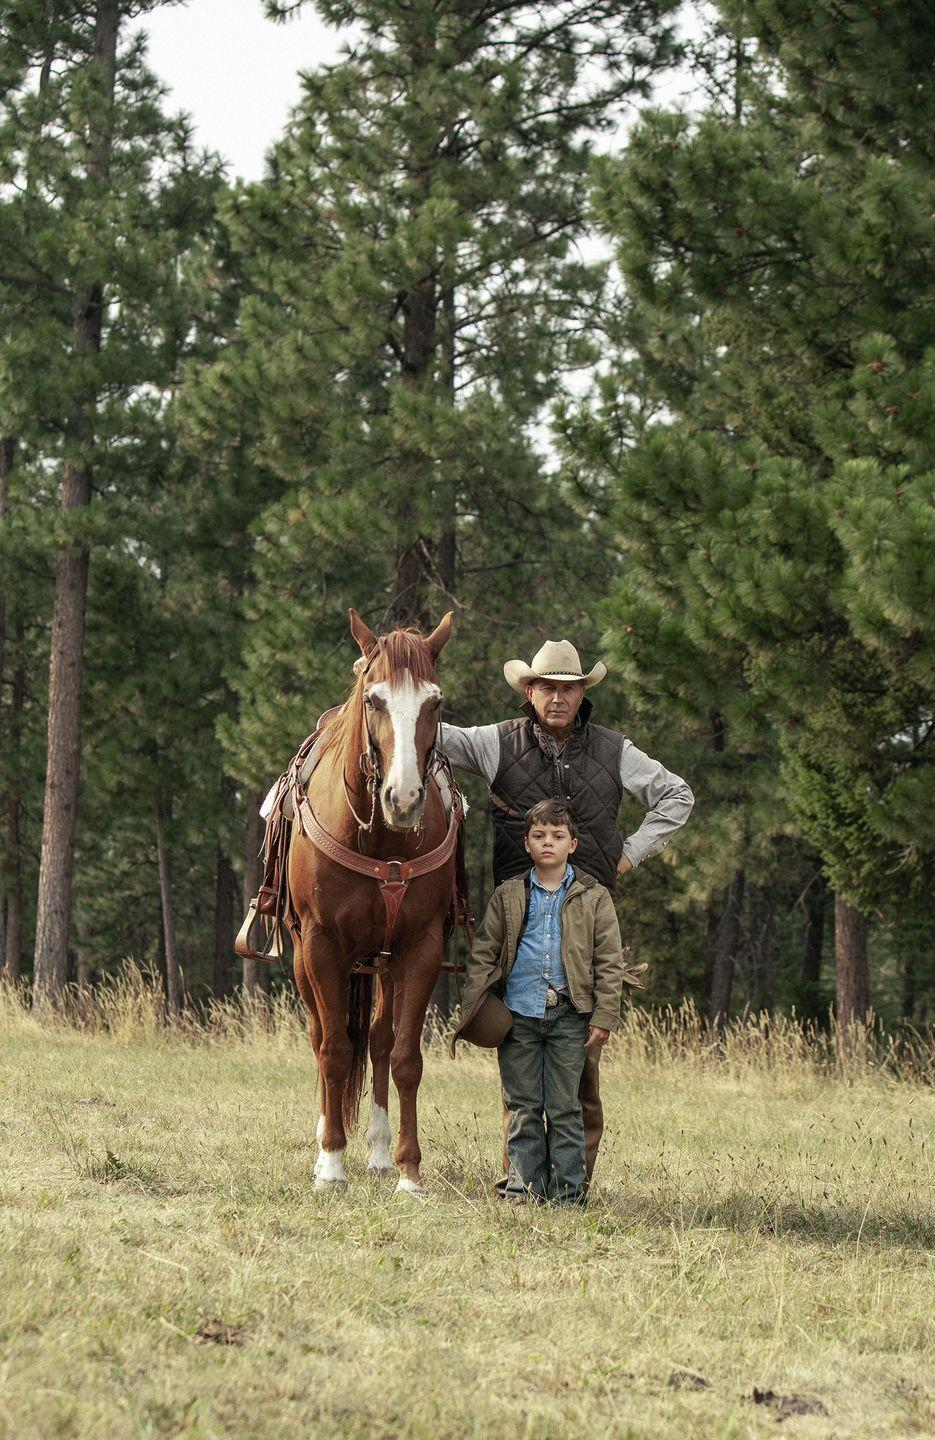 """<p>Young Merrill plays Kayce and Monica's son. This has been the adorable actor's first breakout role, but he's handling it like a pro. """"I've worked with kids in the past that are tough, it's hard to keep them on track or keep them focused, and he's actually really good,"""" <a href=""""https://www.youtube.com/watch?v=1-IYjIOMY3g&t=75s"""" rel=""""nofollow noopener"""" target=""""_blank"""" data-ylk=""""slk:Grimes said"""" class=""""link rapid-noclick-resp"""">Grimes said</a>.</p>"""